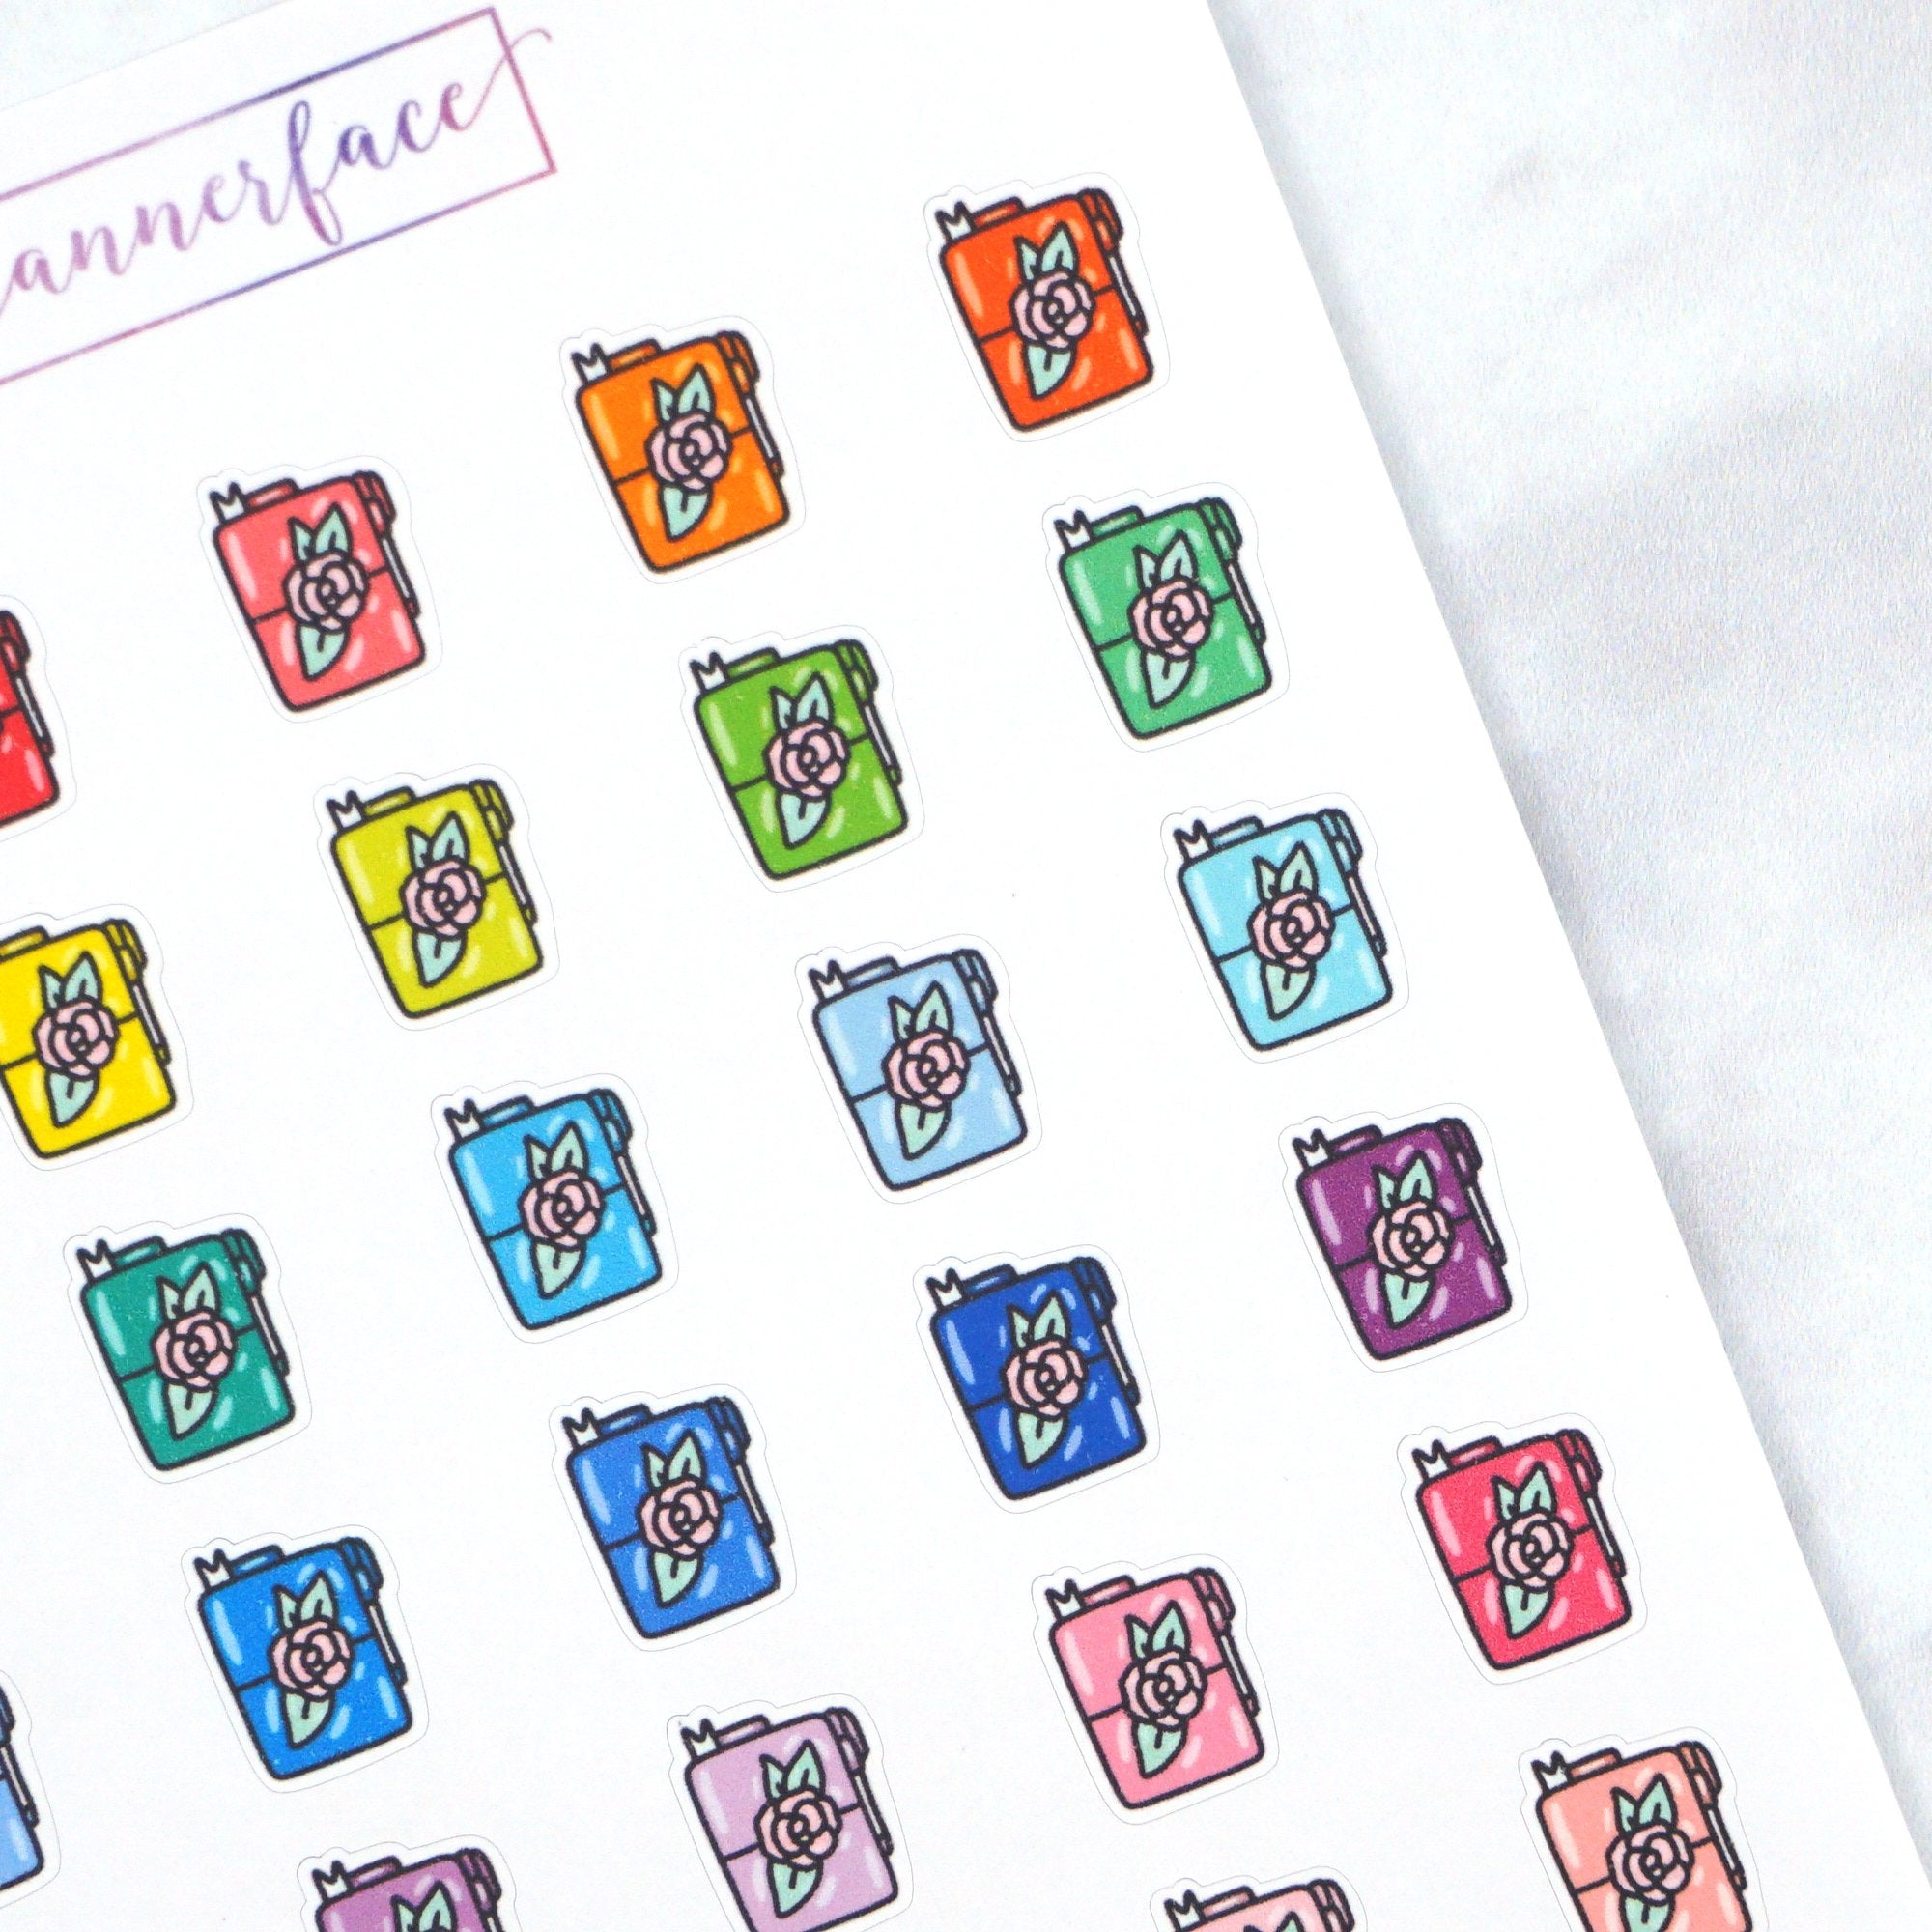 Plannerface Travellers Notebook Multicolour Doodles Planner Stickers